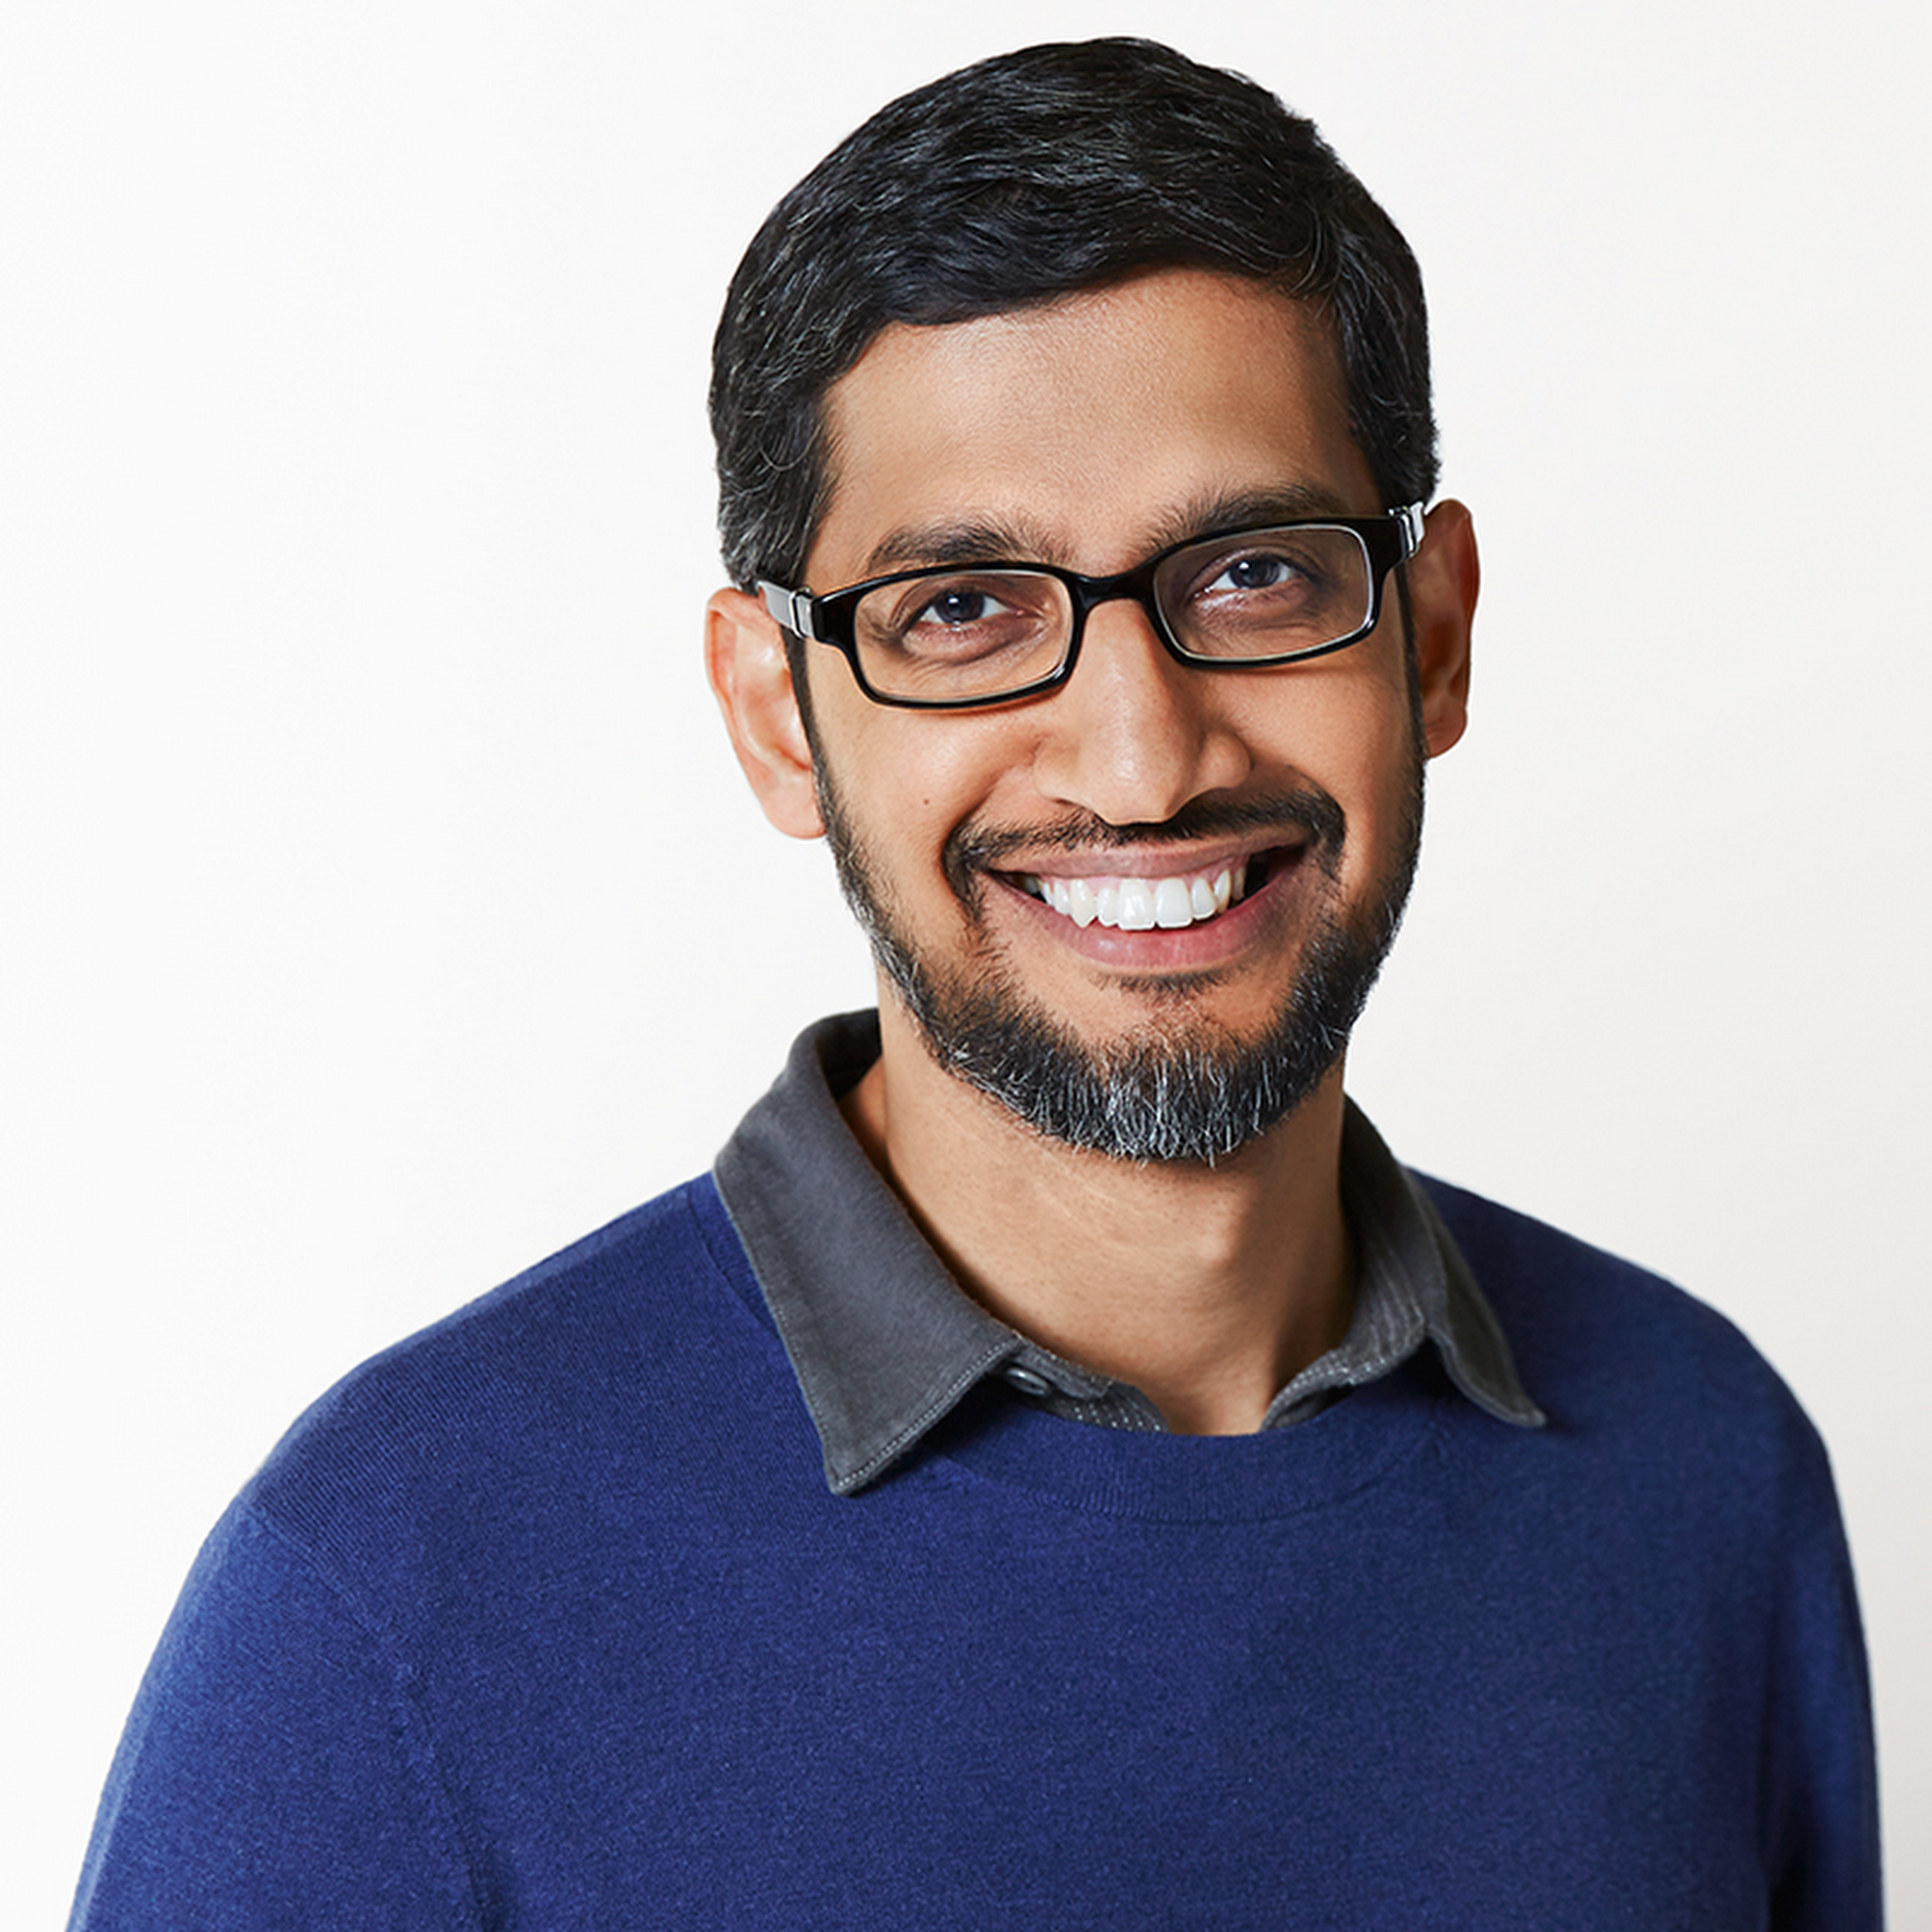 Sundar Pichai - CEO, Google Inc